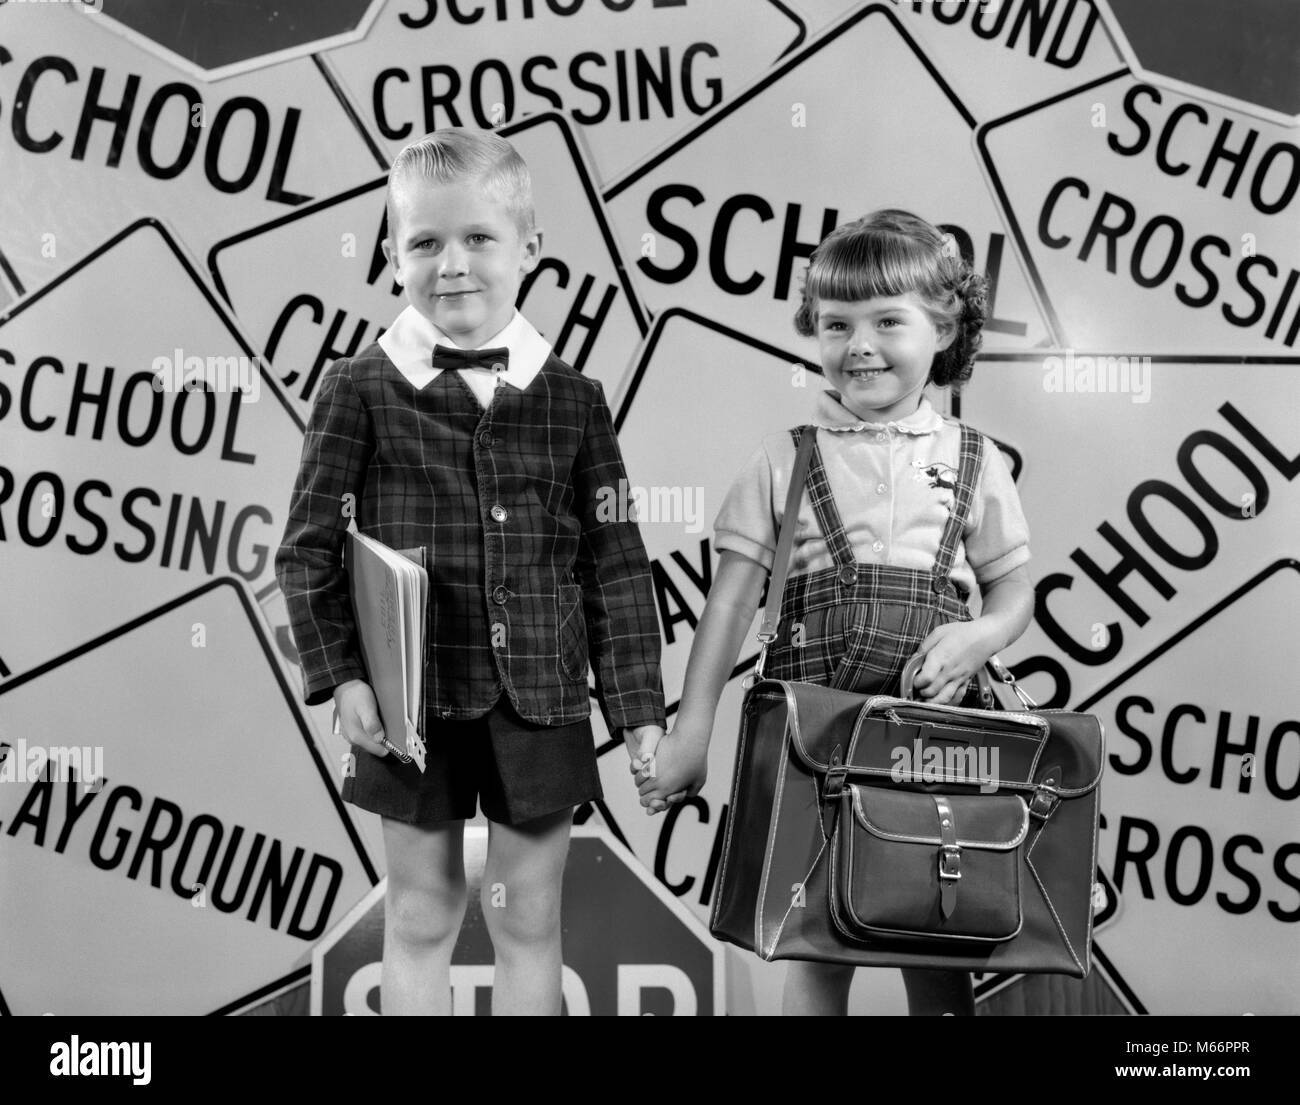 1950s MONTAGE OF BOY & GIRL IN PLAID JACKET & SKIRT HOLDING HANDS LOOKING AT CAMERA SUPERIMPOSED OVER SCHOOL - Stock Image